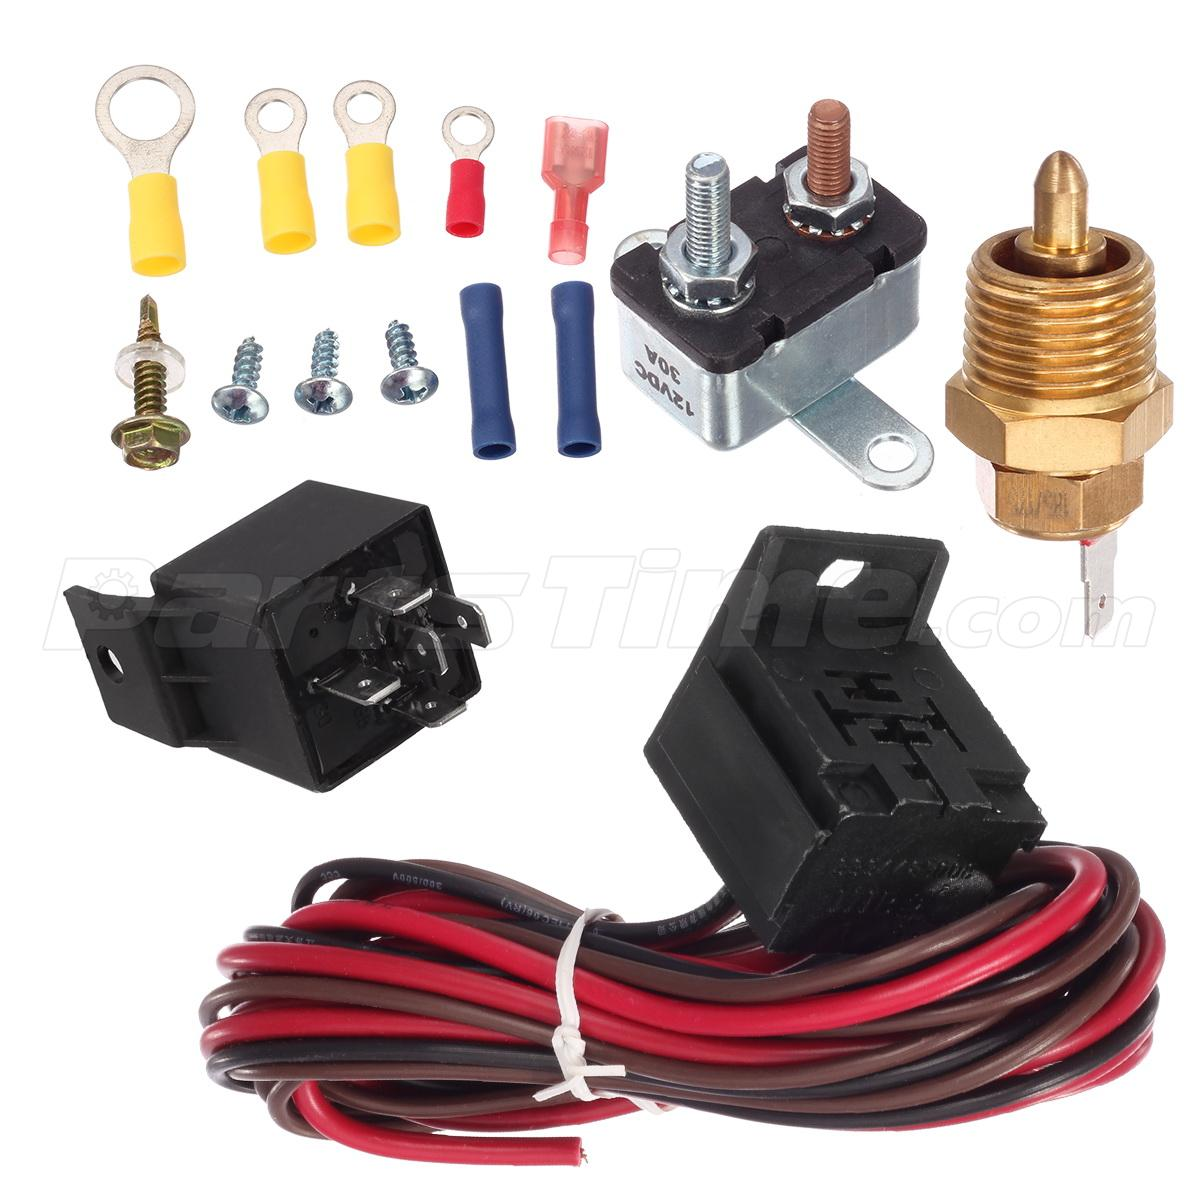 Electric radiator engine fan thermostat temperature switch relay kit 200 degree ebay - Four 200 degres thermostat ...